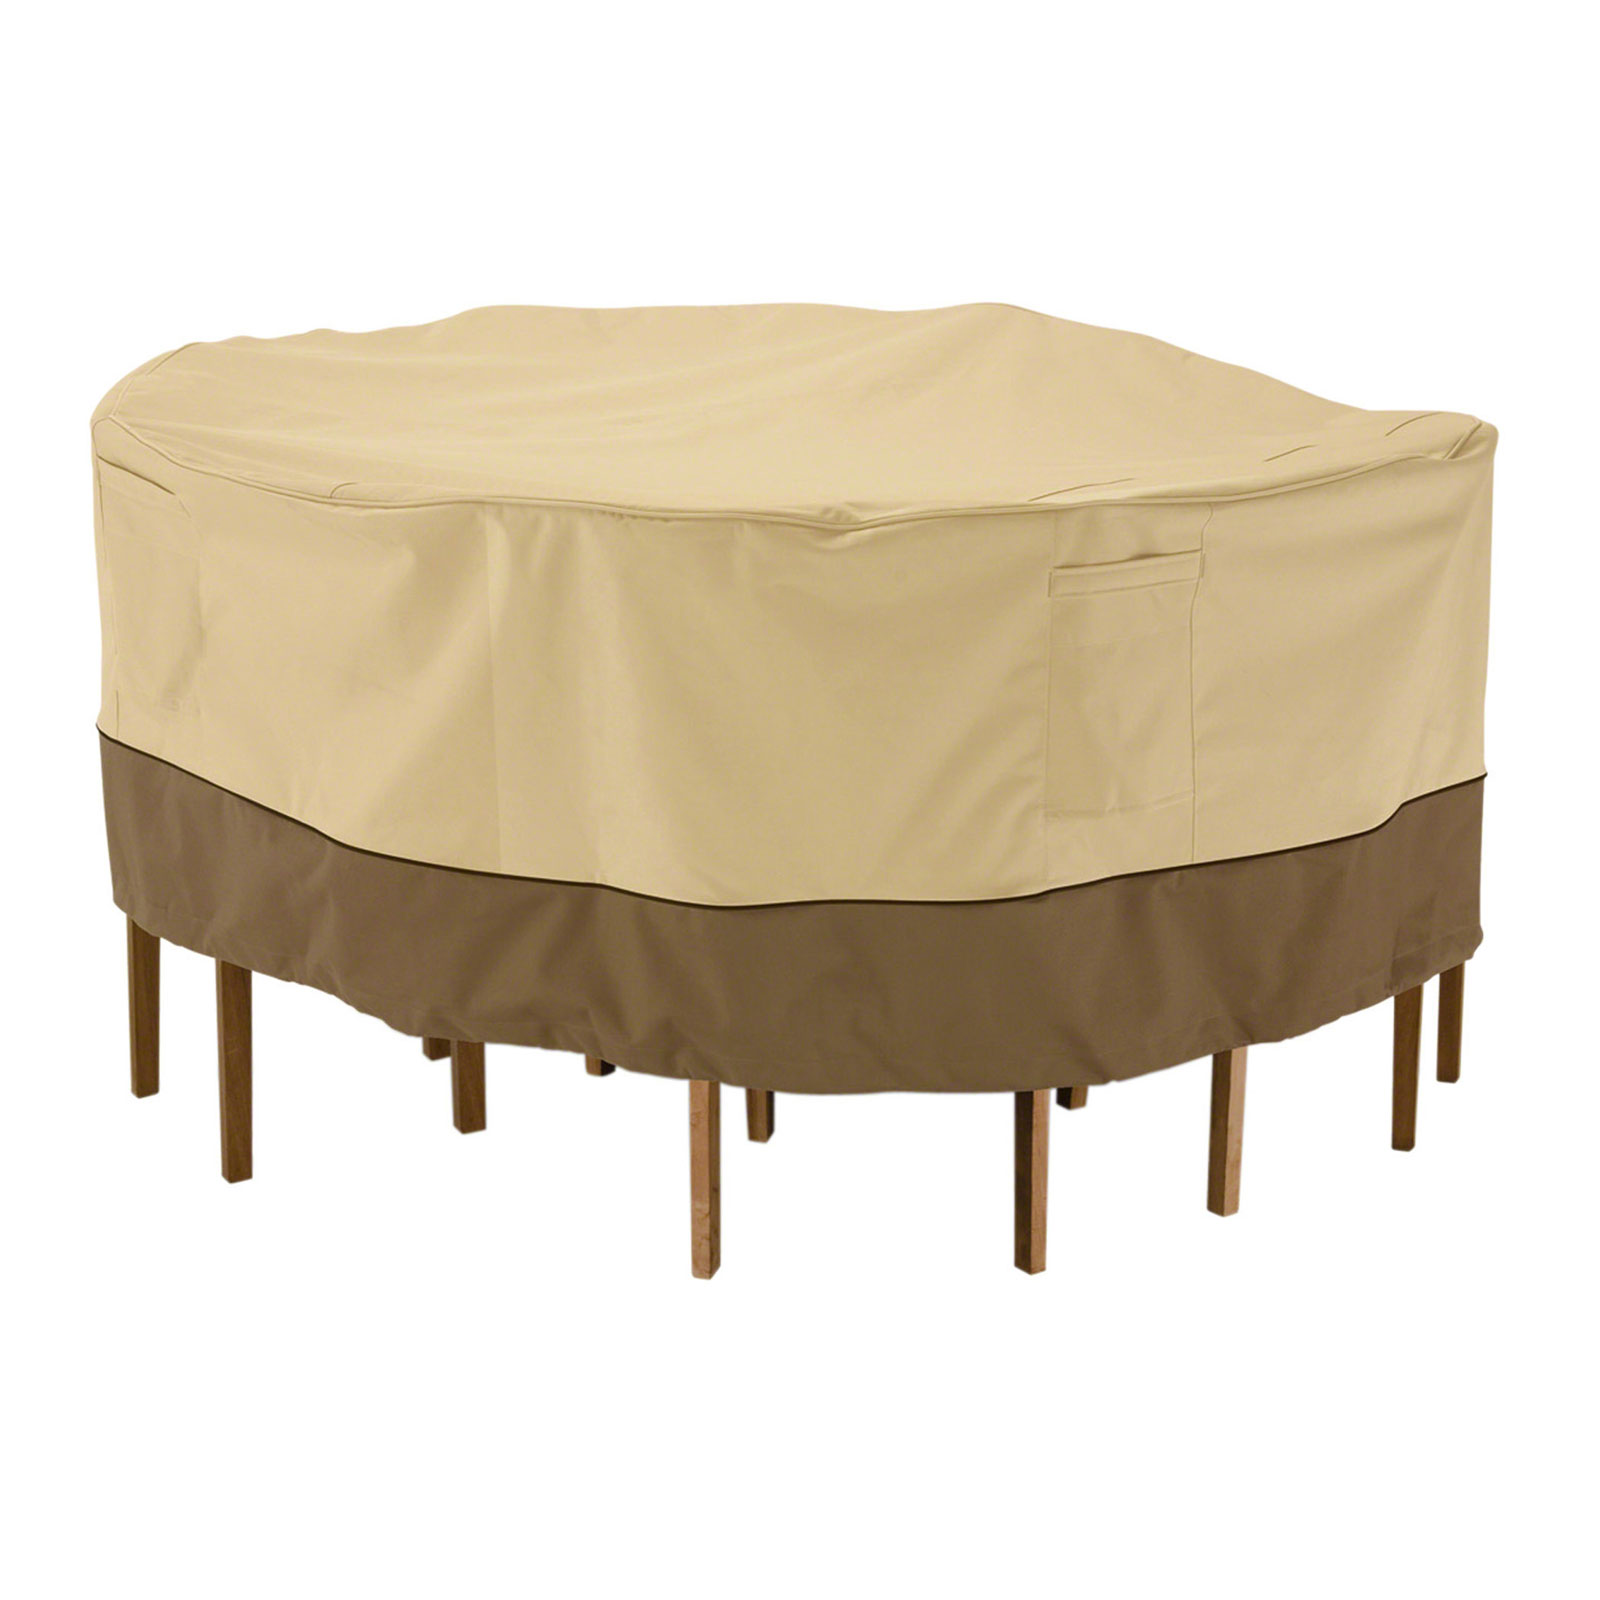 Patio cover table and chairs in patio furniture covers for Outside table and chairs